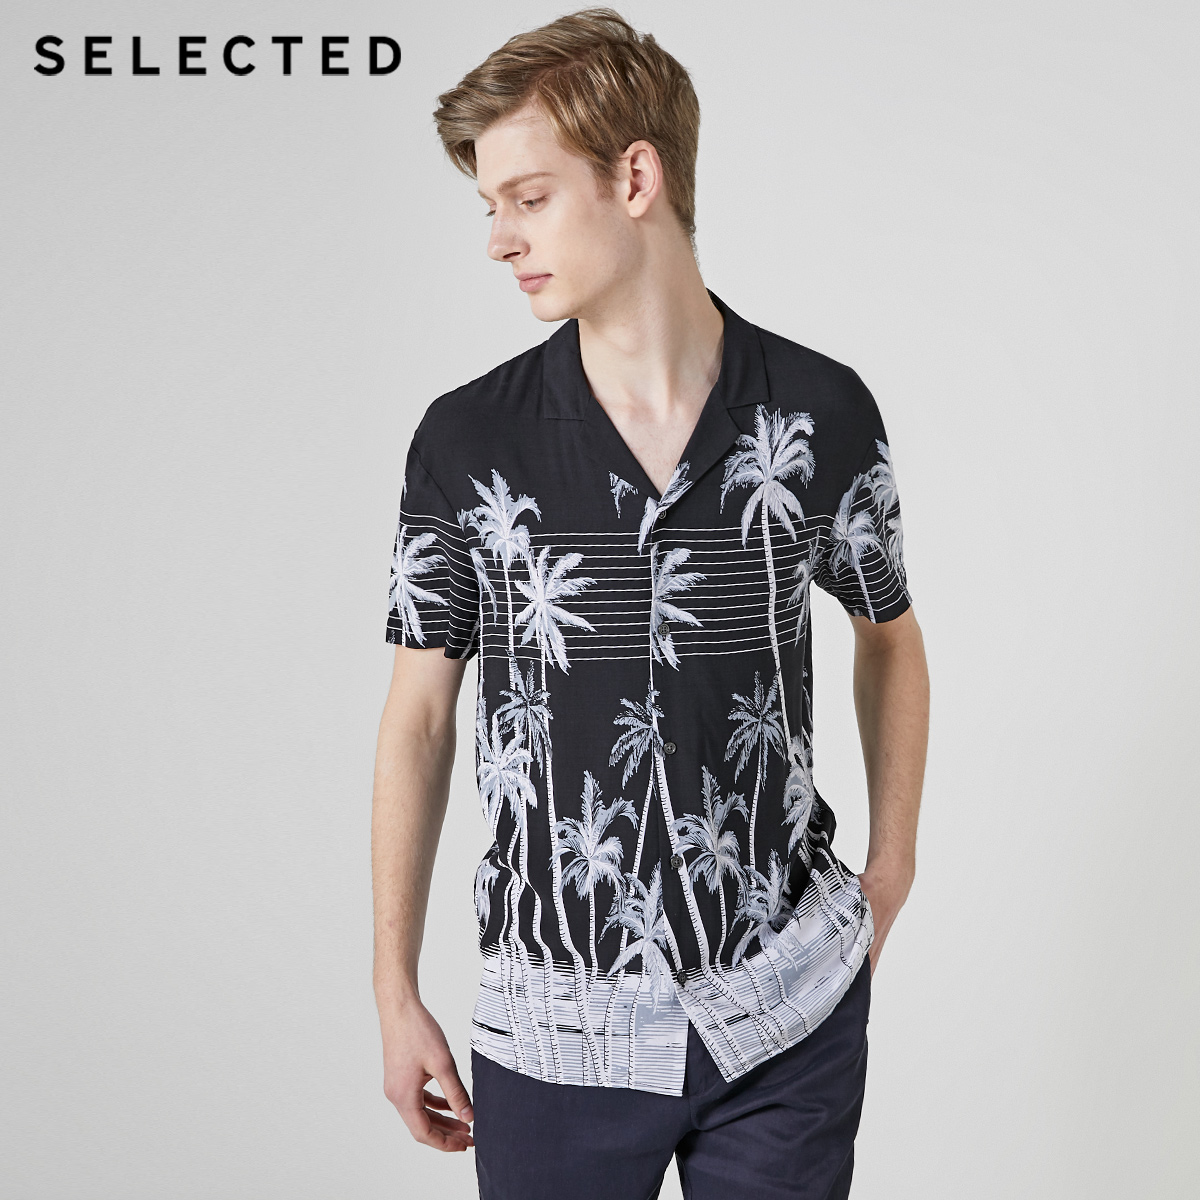 SELECTED Men's Thin Printing Trendy Temperament Casual Printed Short-sleeved Shirt S|419204553